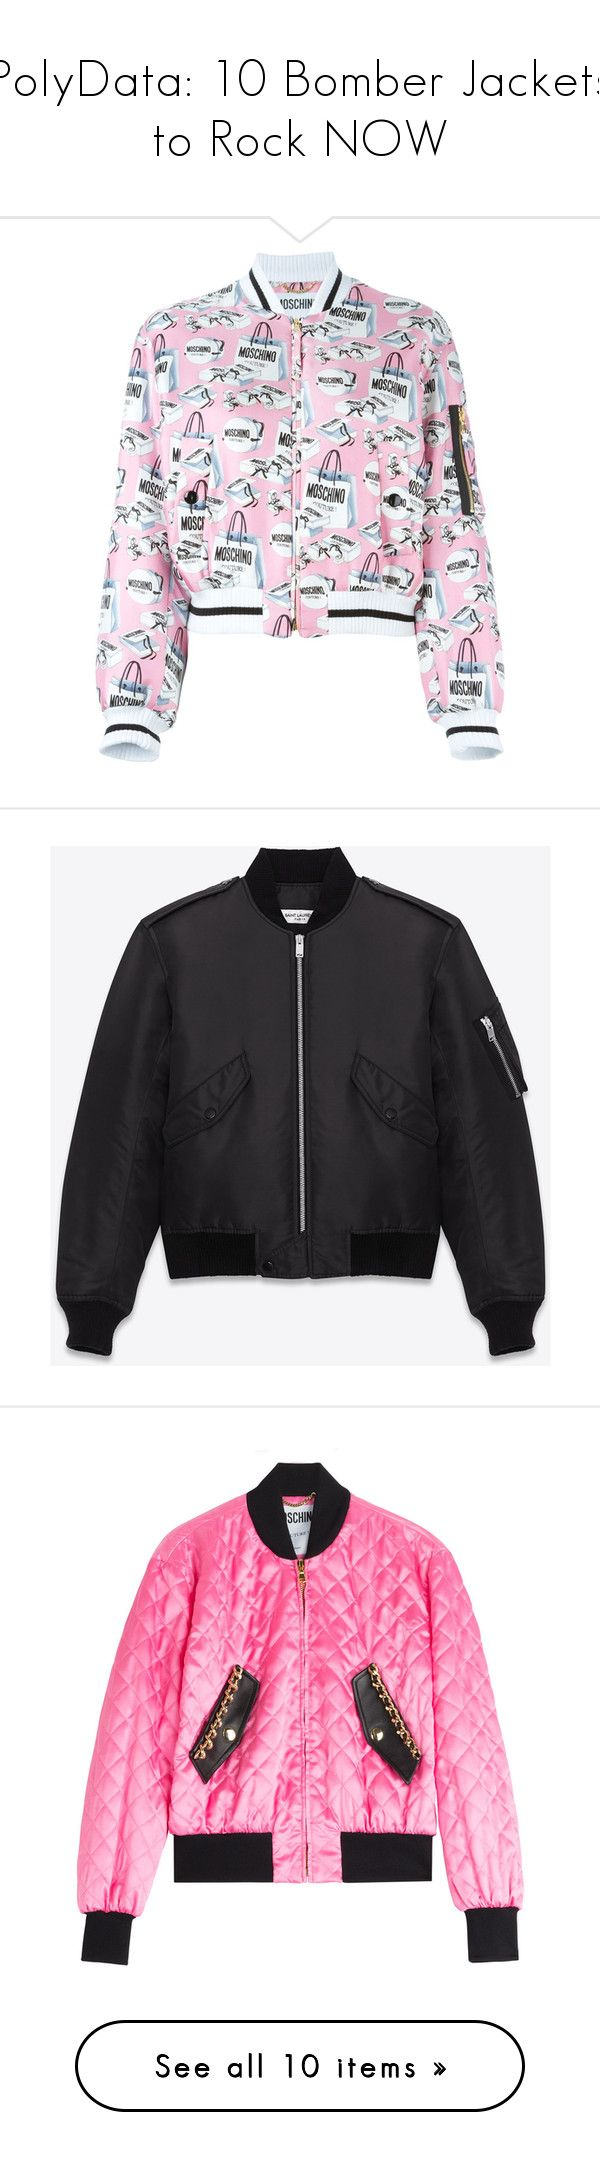 """PolyData: 10 Bomber Jackets to Rock NOW"" by polyvore ❤ liked on Polyvore featuring polydata, outerwear, jackets, bomber jacket, pink, zip front jacket, pink jacket, long sleeve jacket, silk jacket and stand collar jacket"